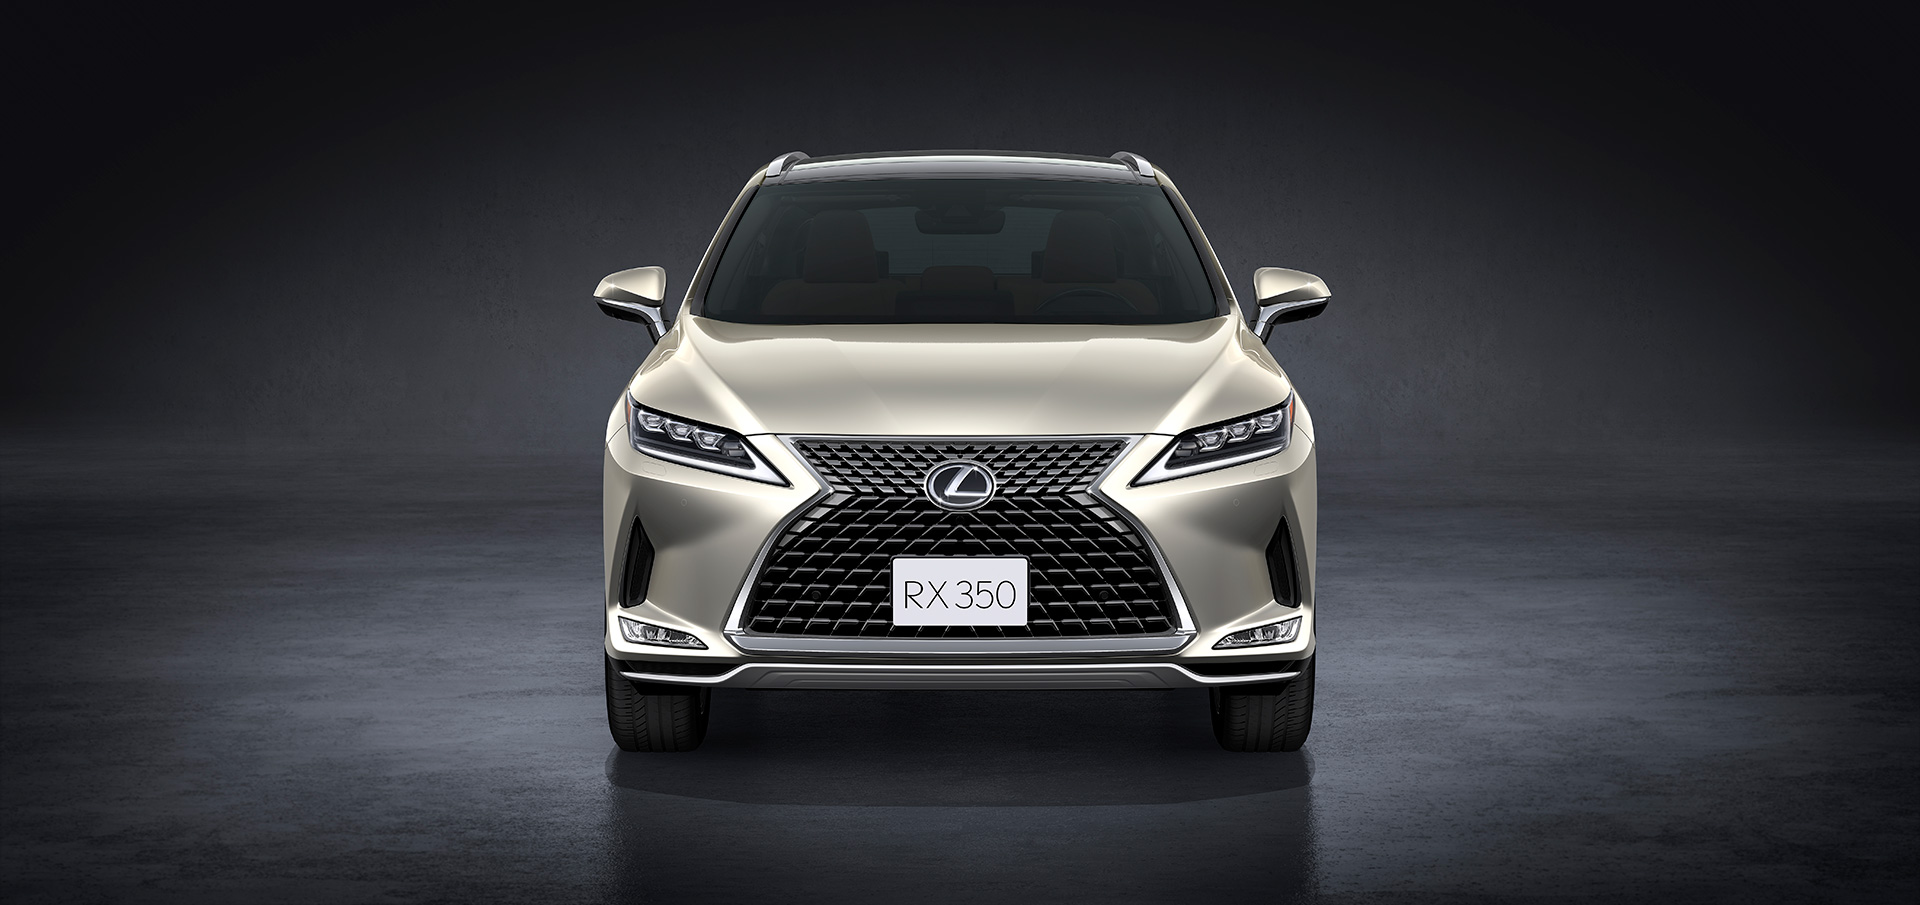 New Lexus RX Makes World DebutThe Pioneer of the Luxury SUV Segment Evolves to New Heights Equipped with the Latest Technology - Image 2